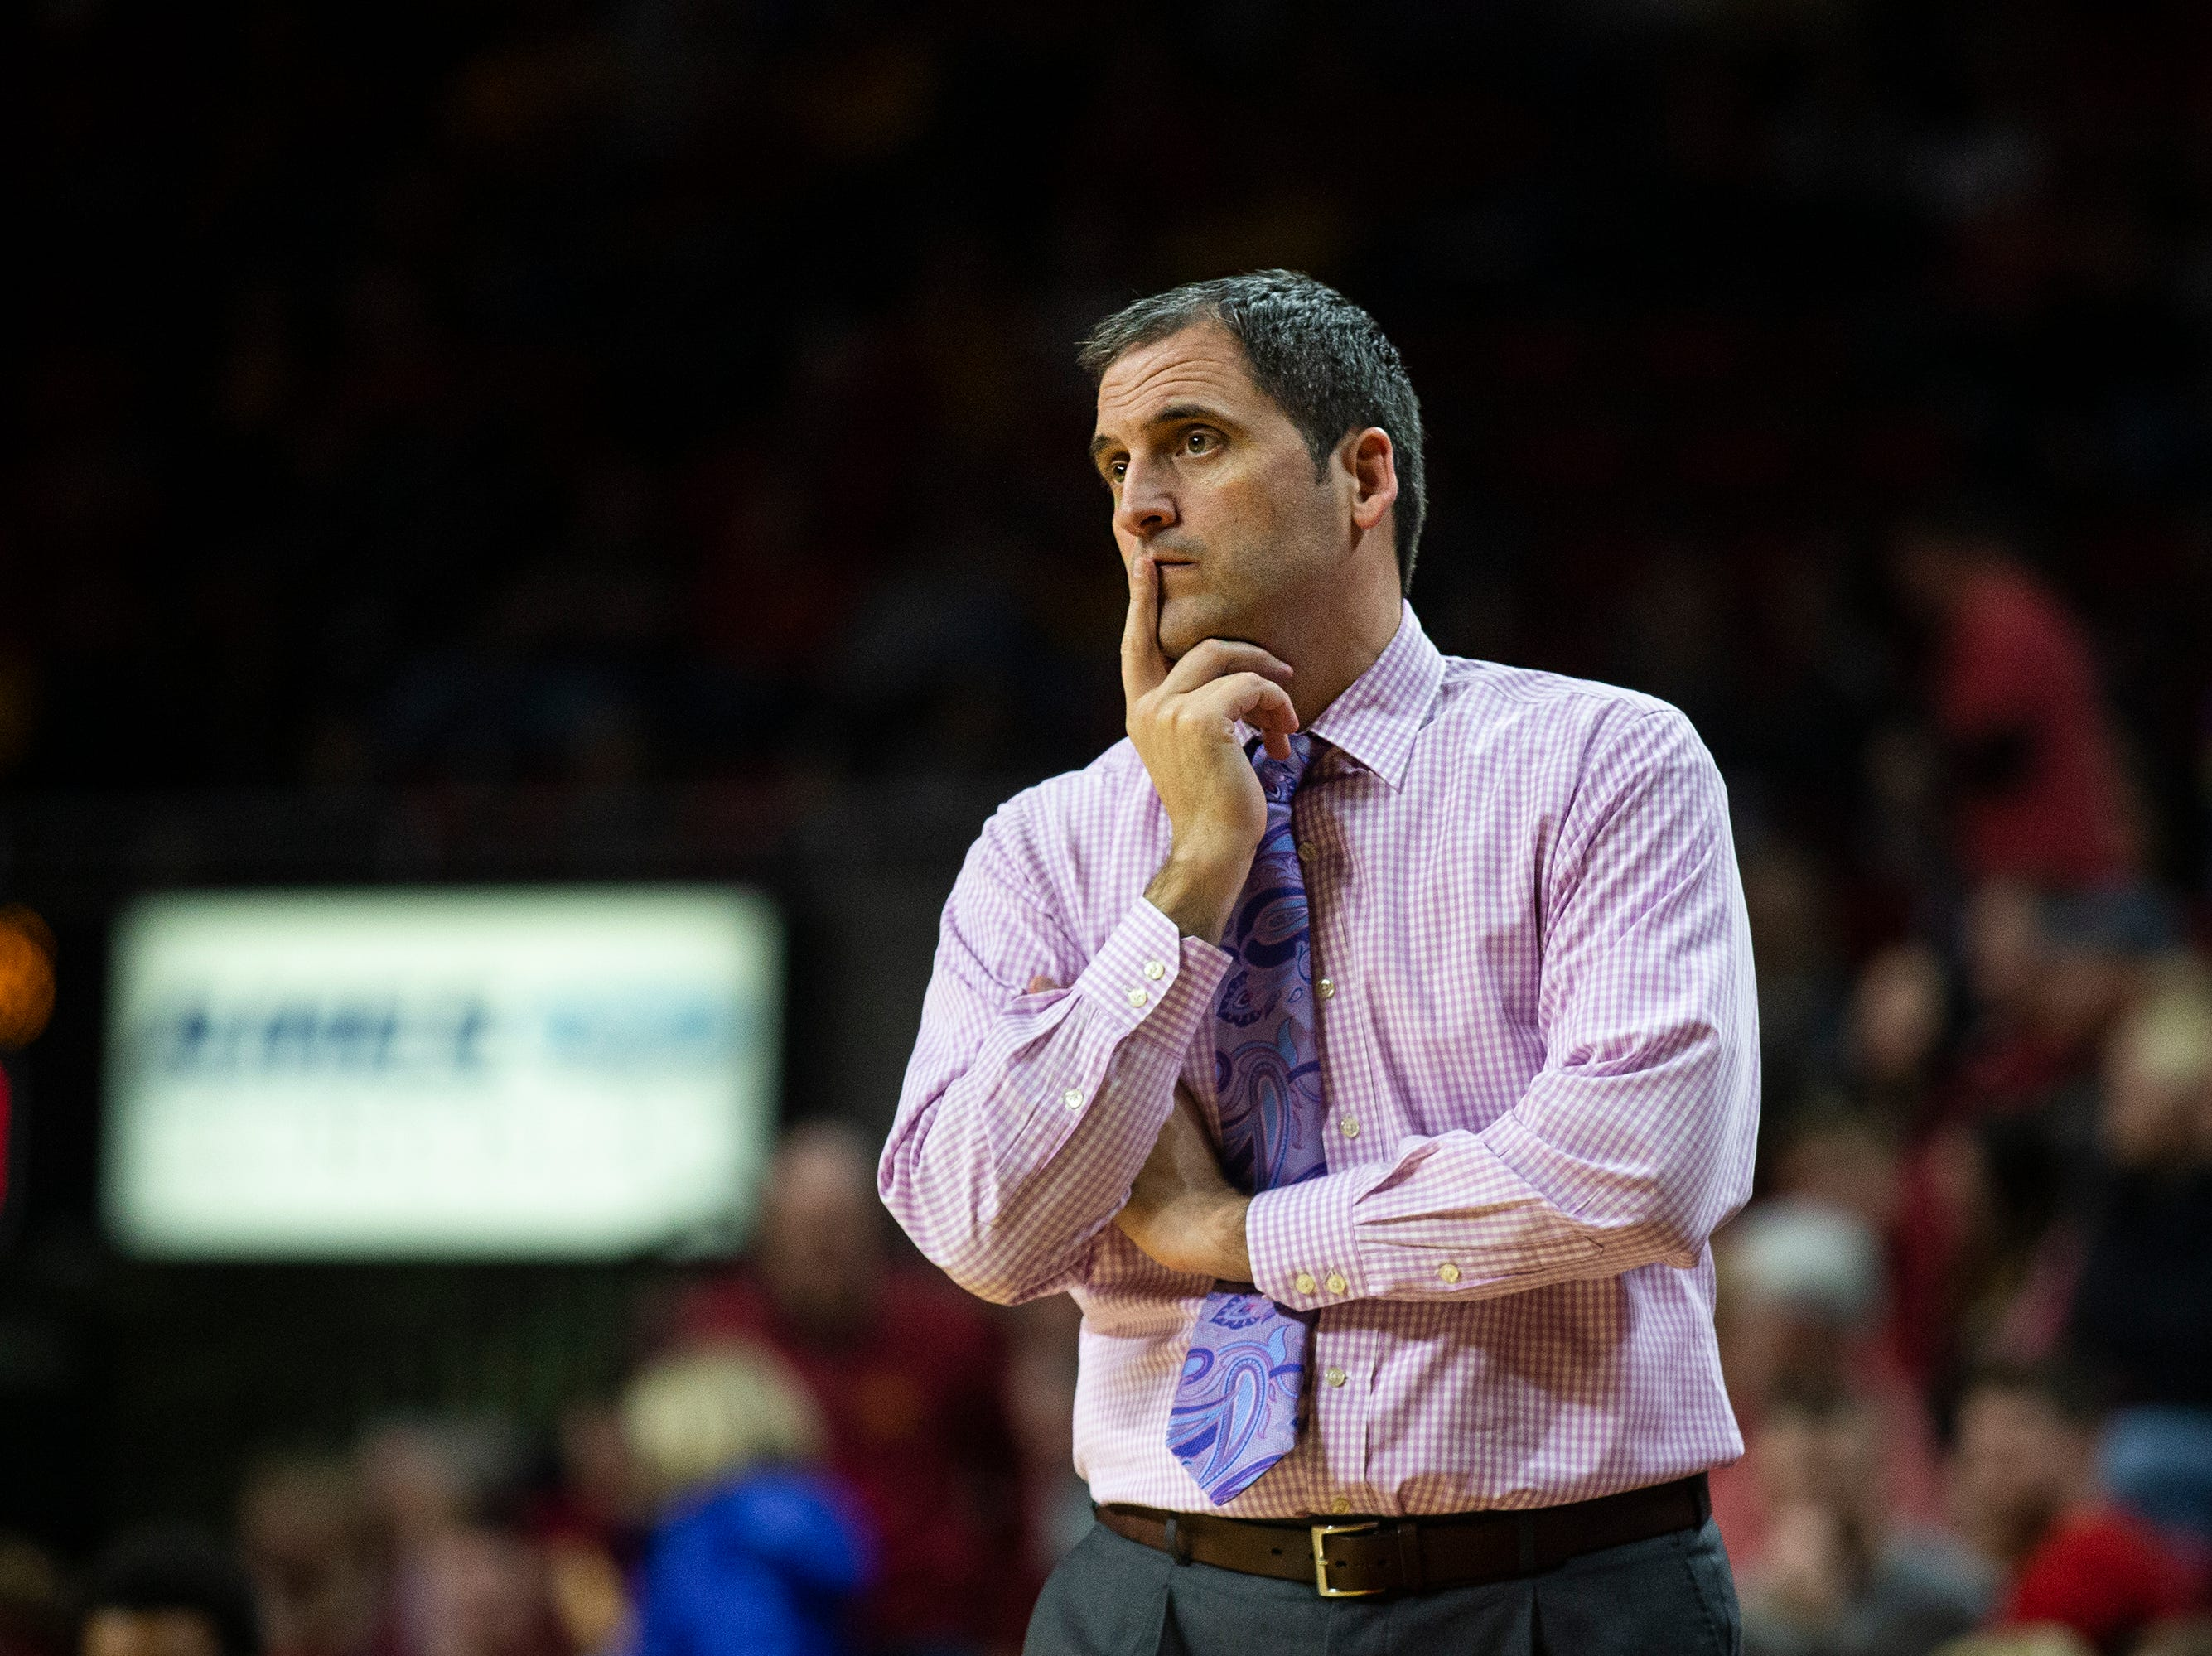 Iowa State Head Coach Steve Prohm watches his team during the Iowa State men's basketball game against Southern on Sunday, Dec. 9, 2018, in Hilton Coliseum.